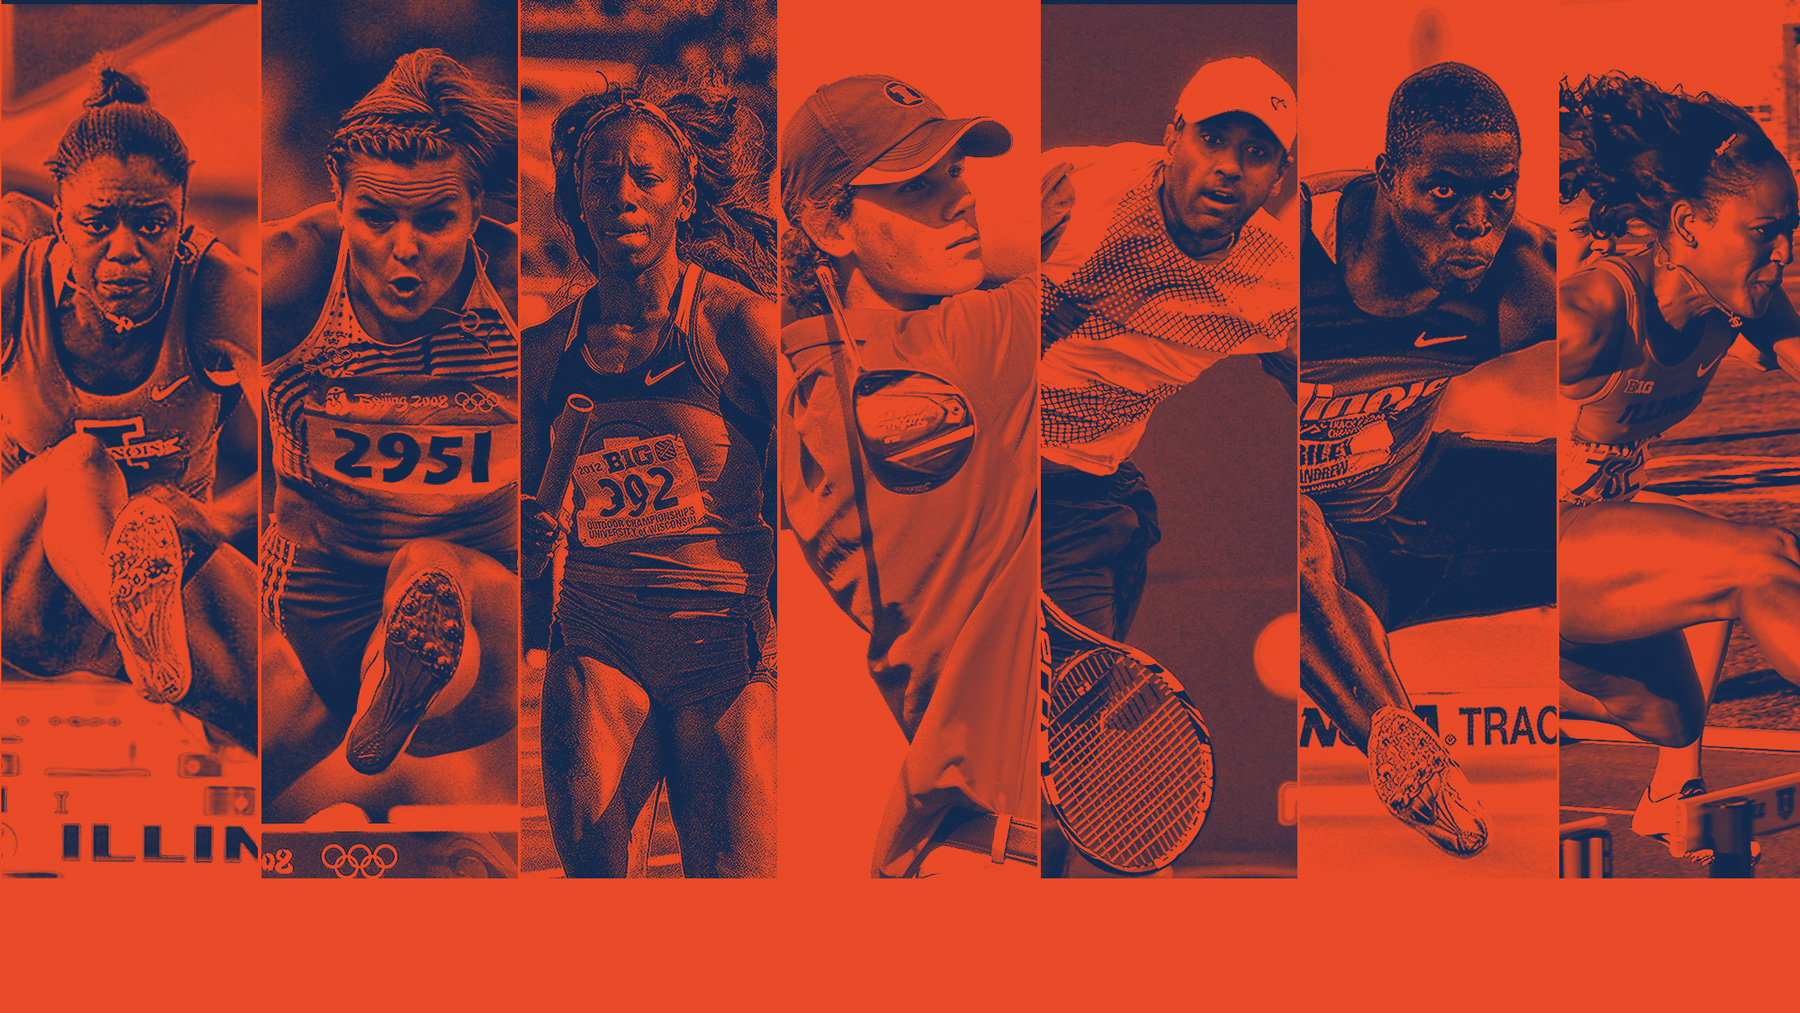 composit image of the seven Illini athlete performing in thier sport